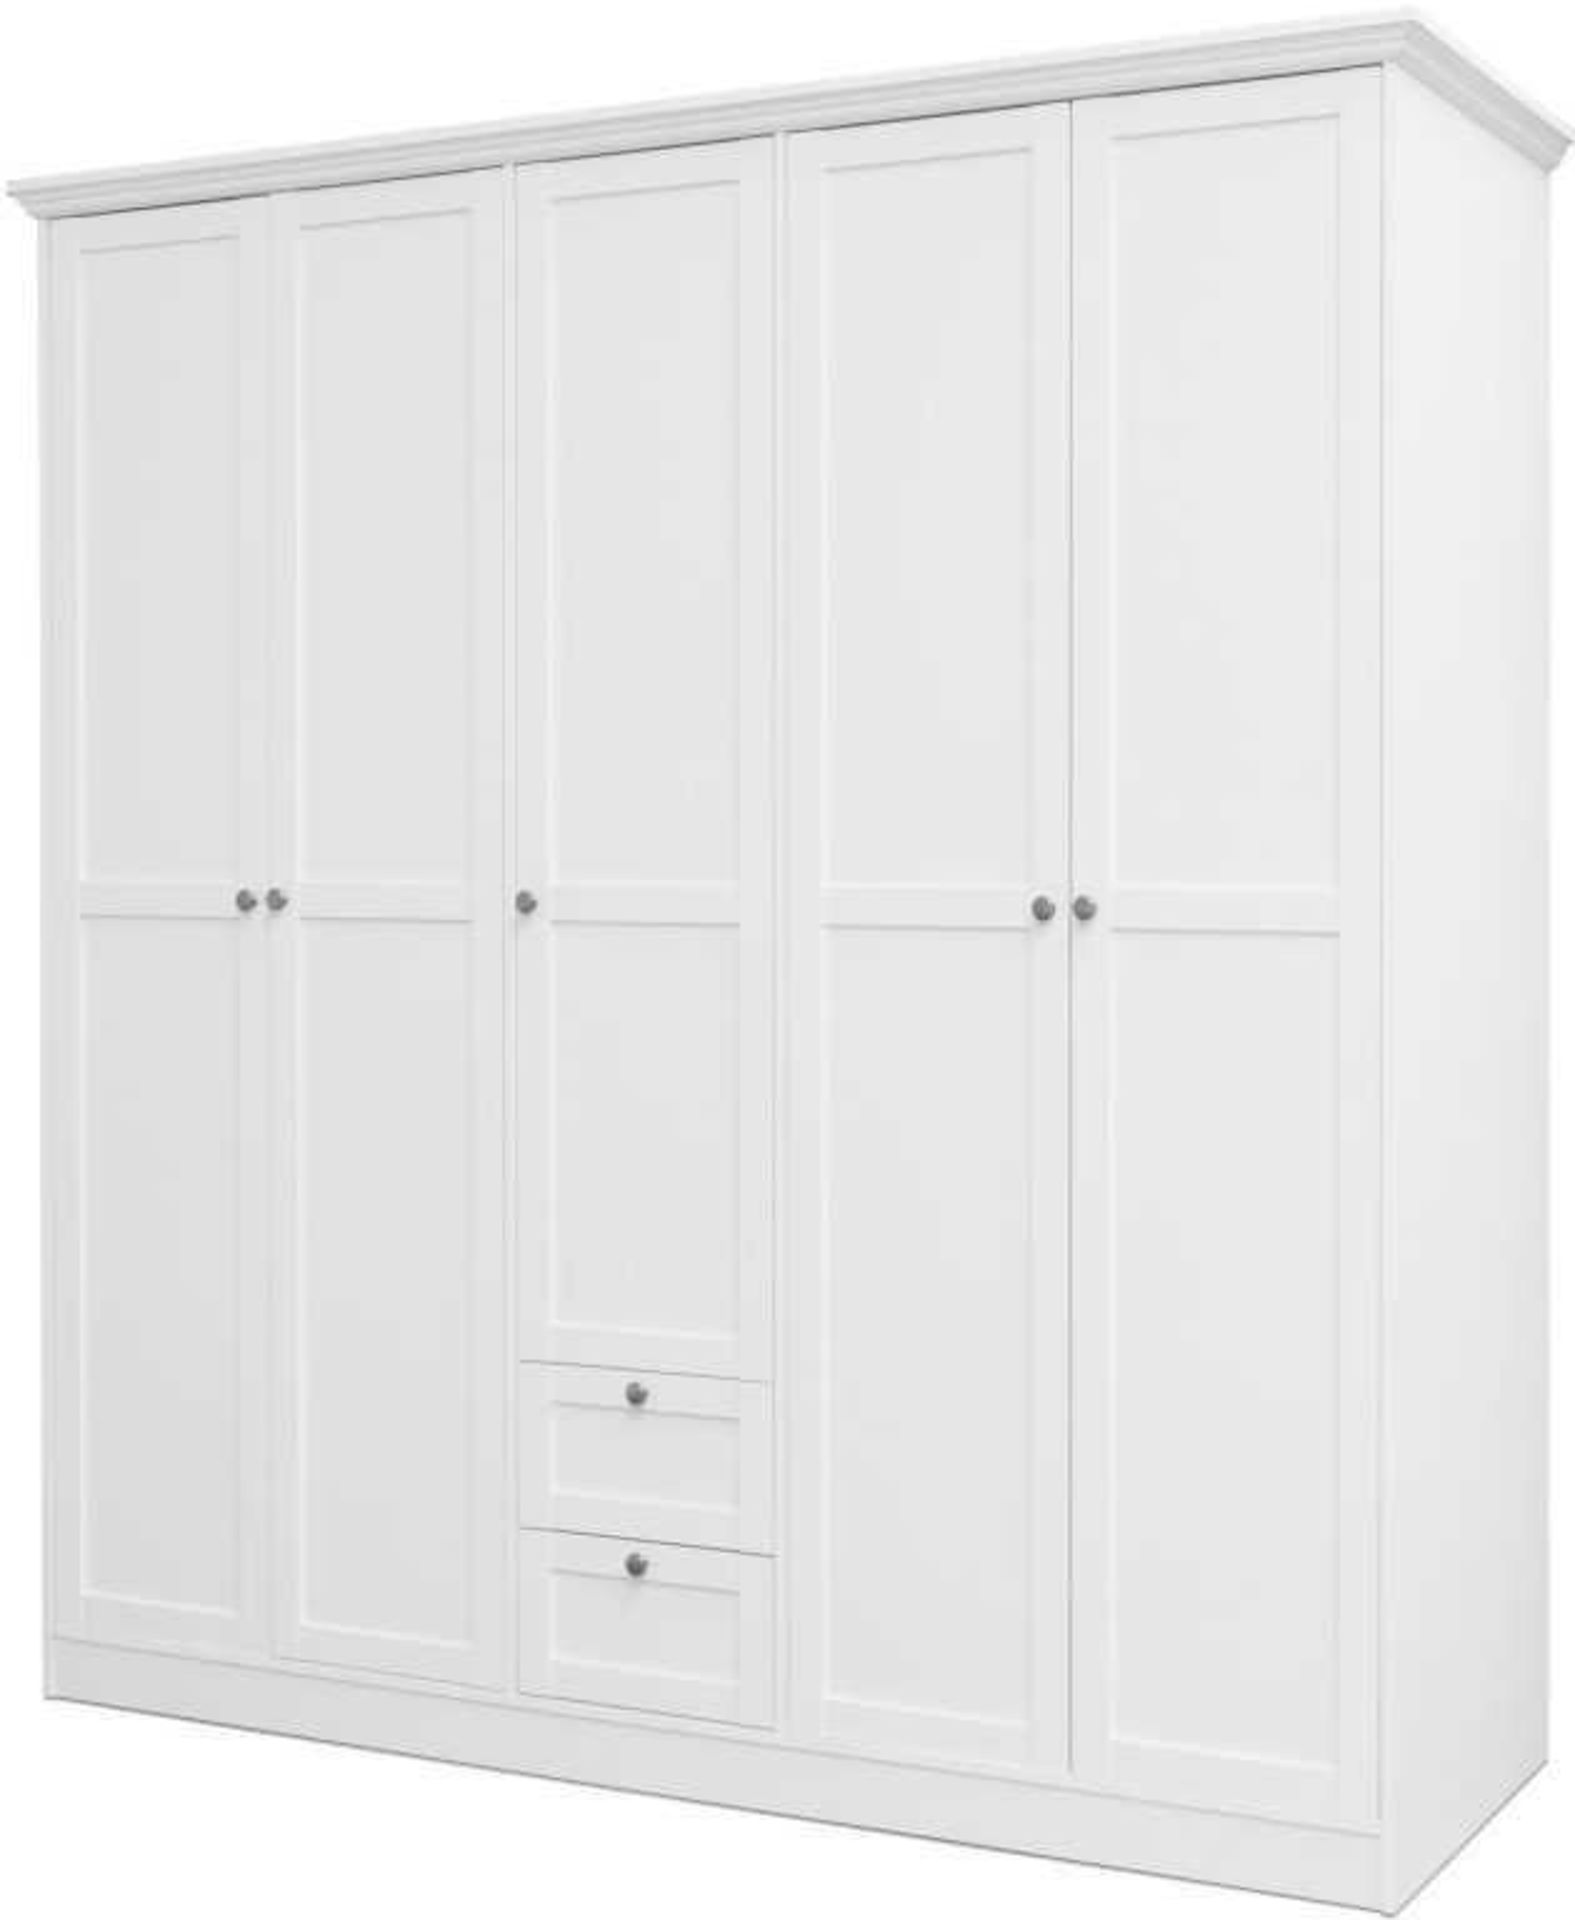 RRP £400 - Boxed 'Landwood 19' Large White Wardrobe With 5 Doors And 2 Drawers